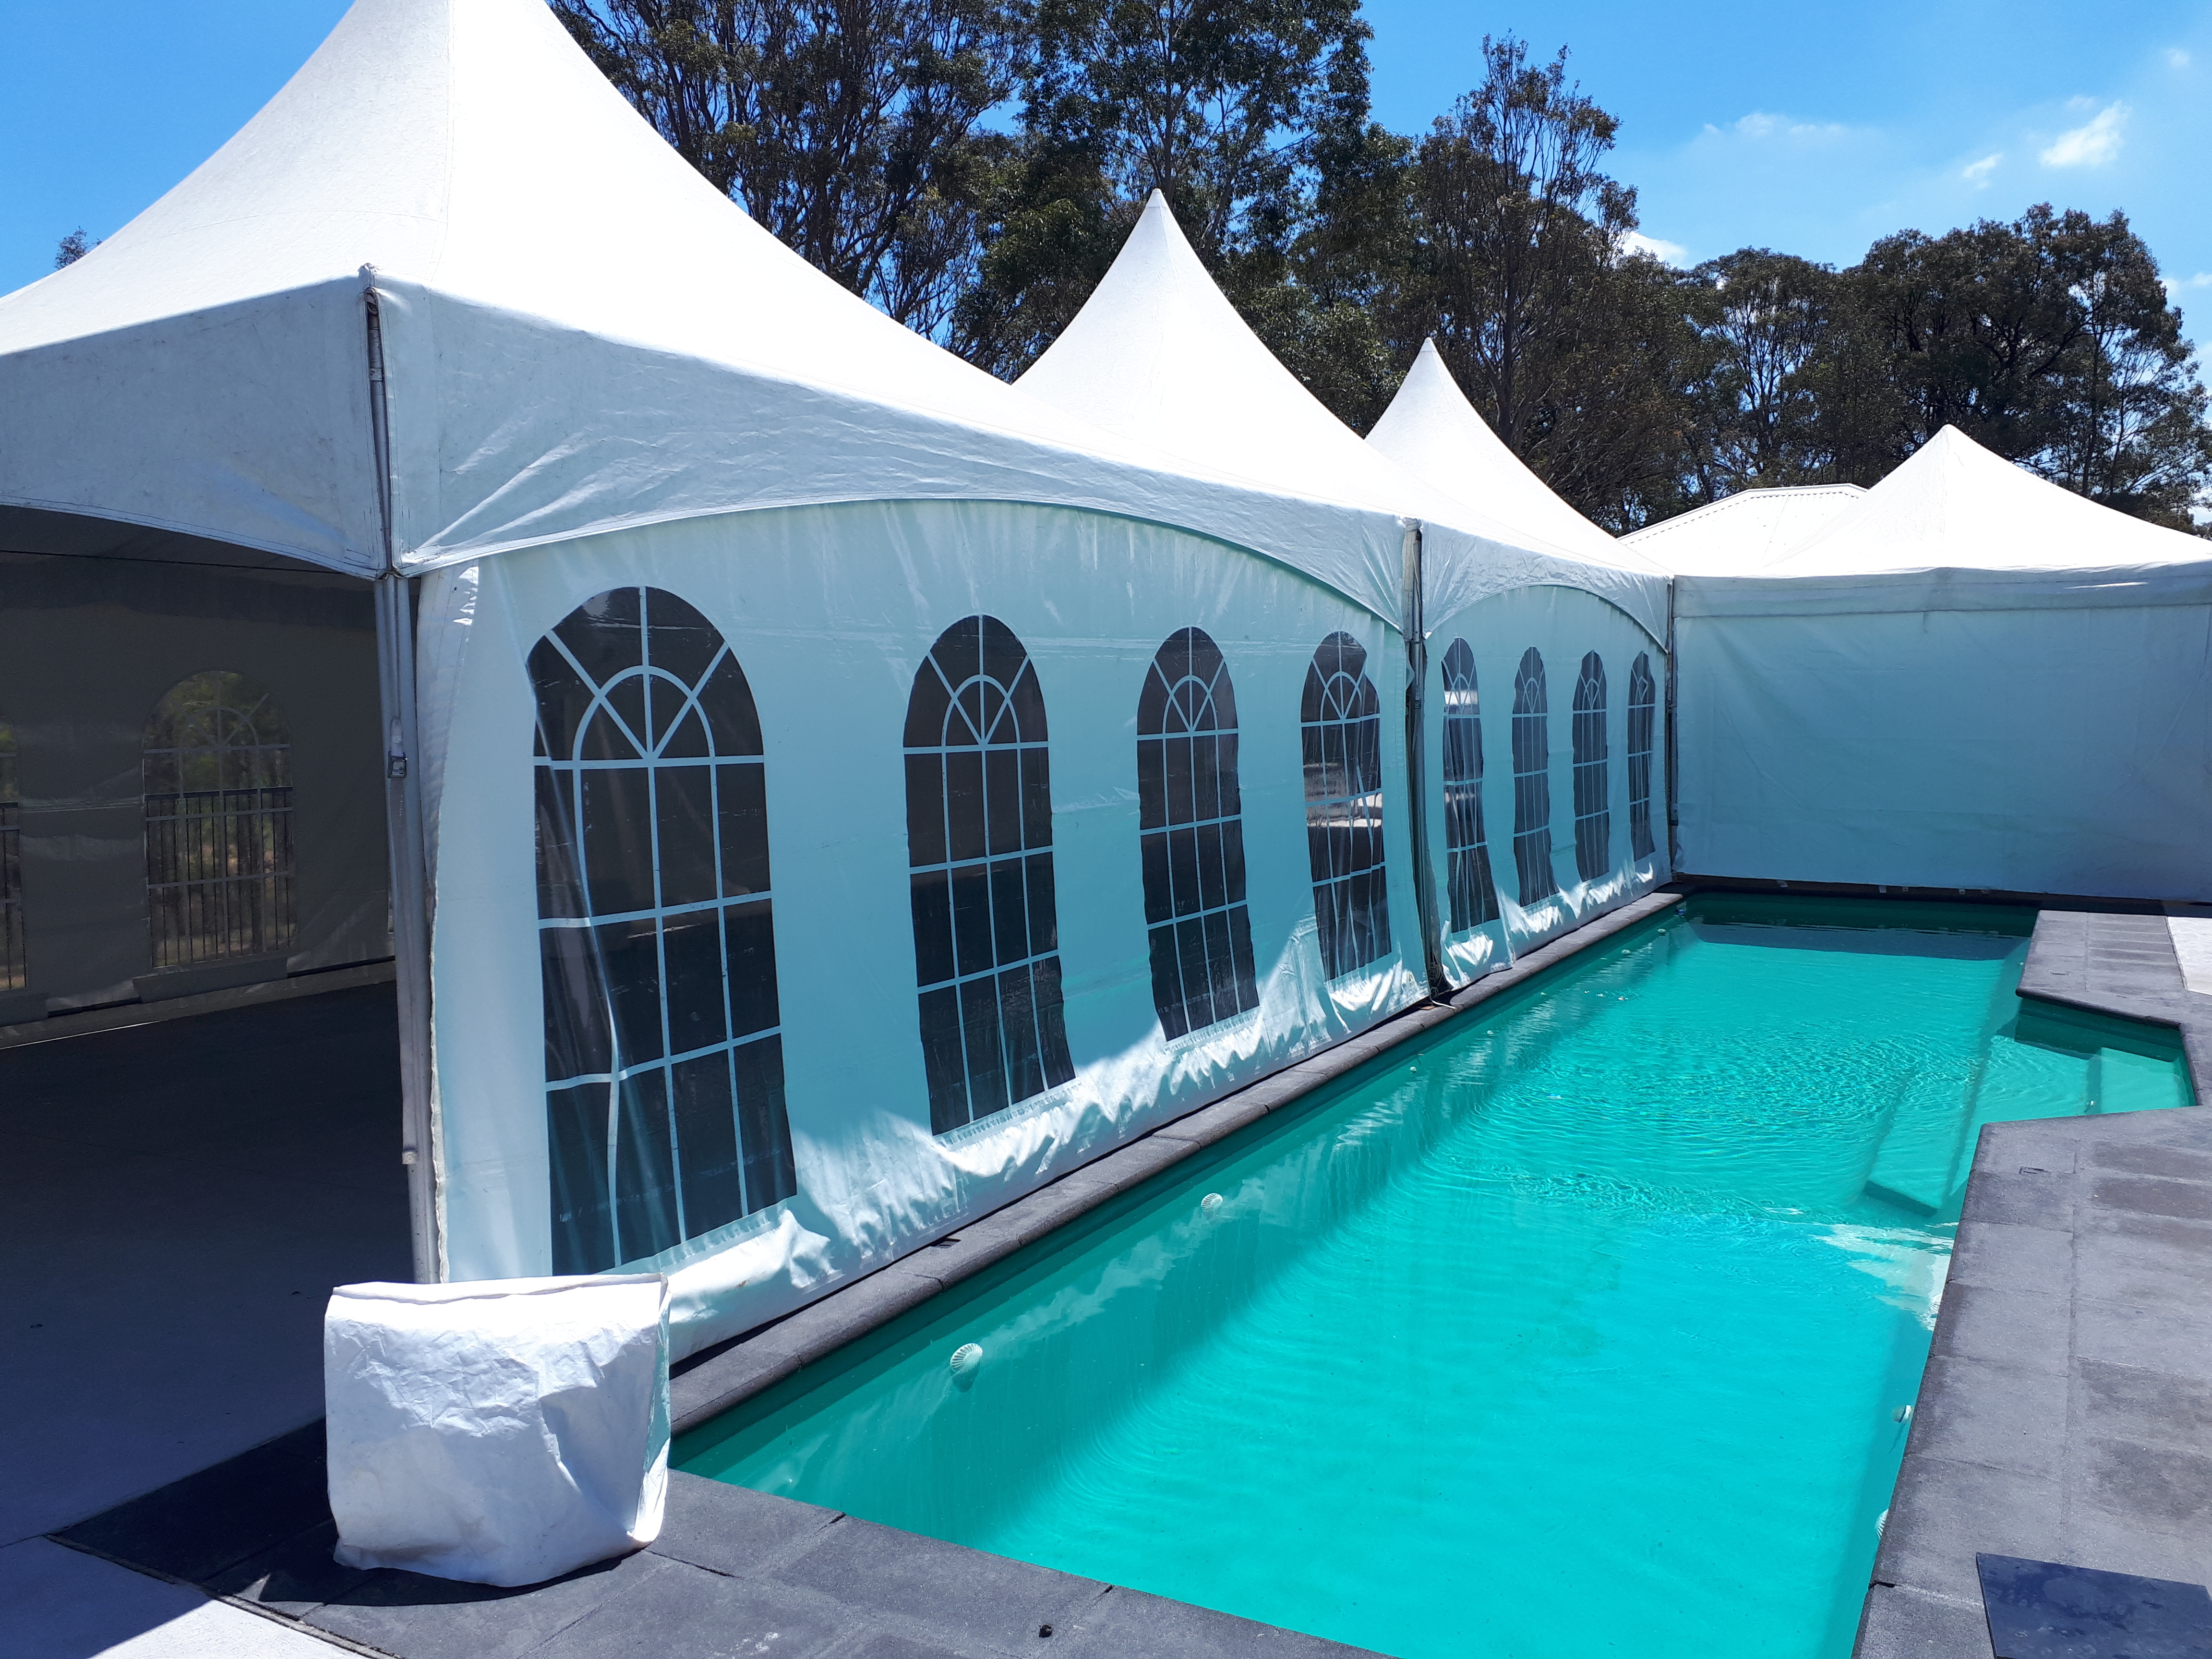 Home - Campbelltown Party Hire